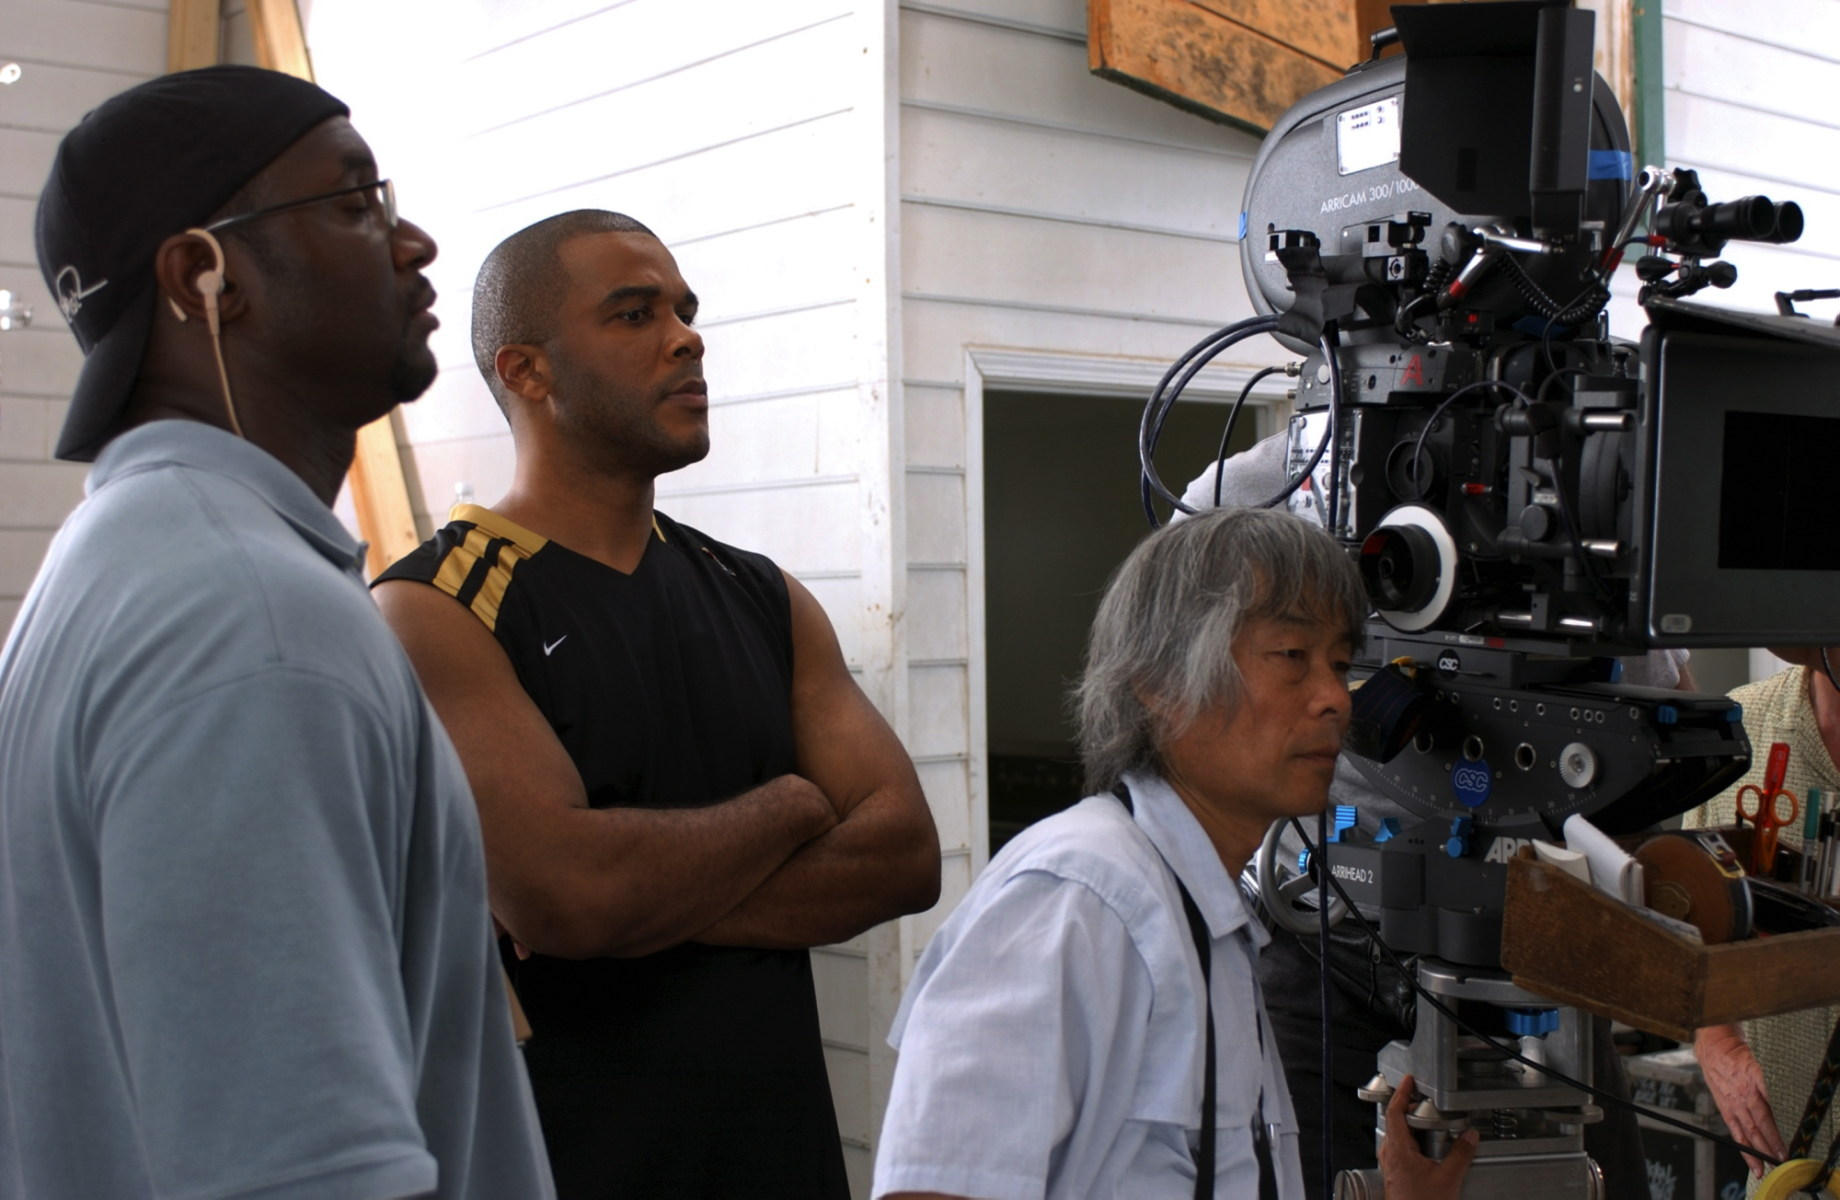 From the Film Madea's Family Reunion (2006) Behind the Scenes